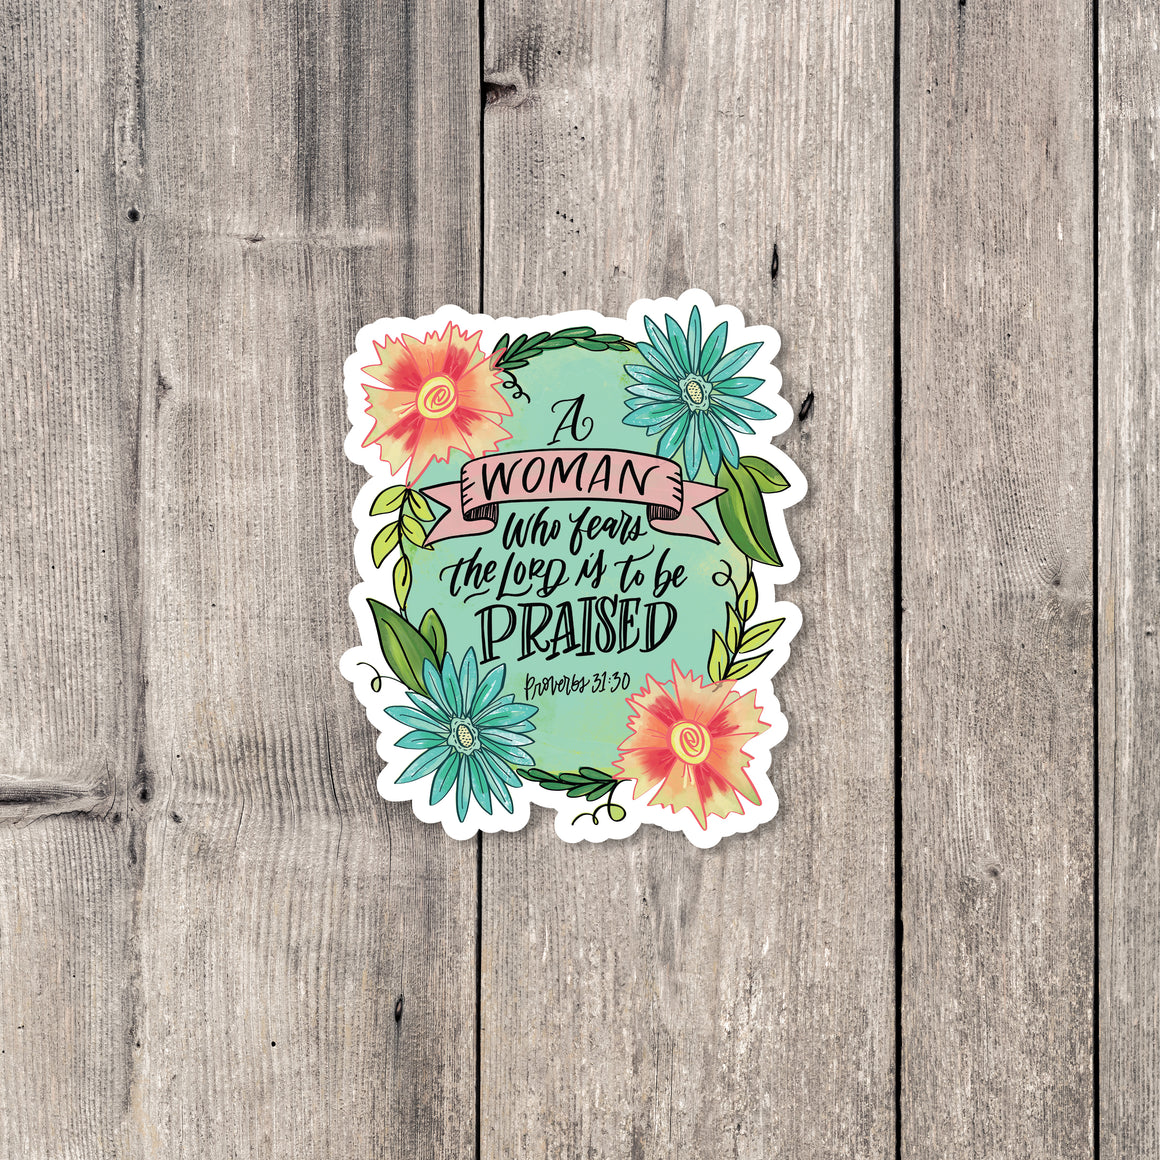 """Praised"" sticker"